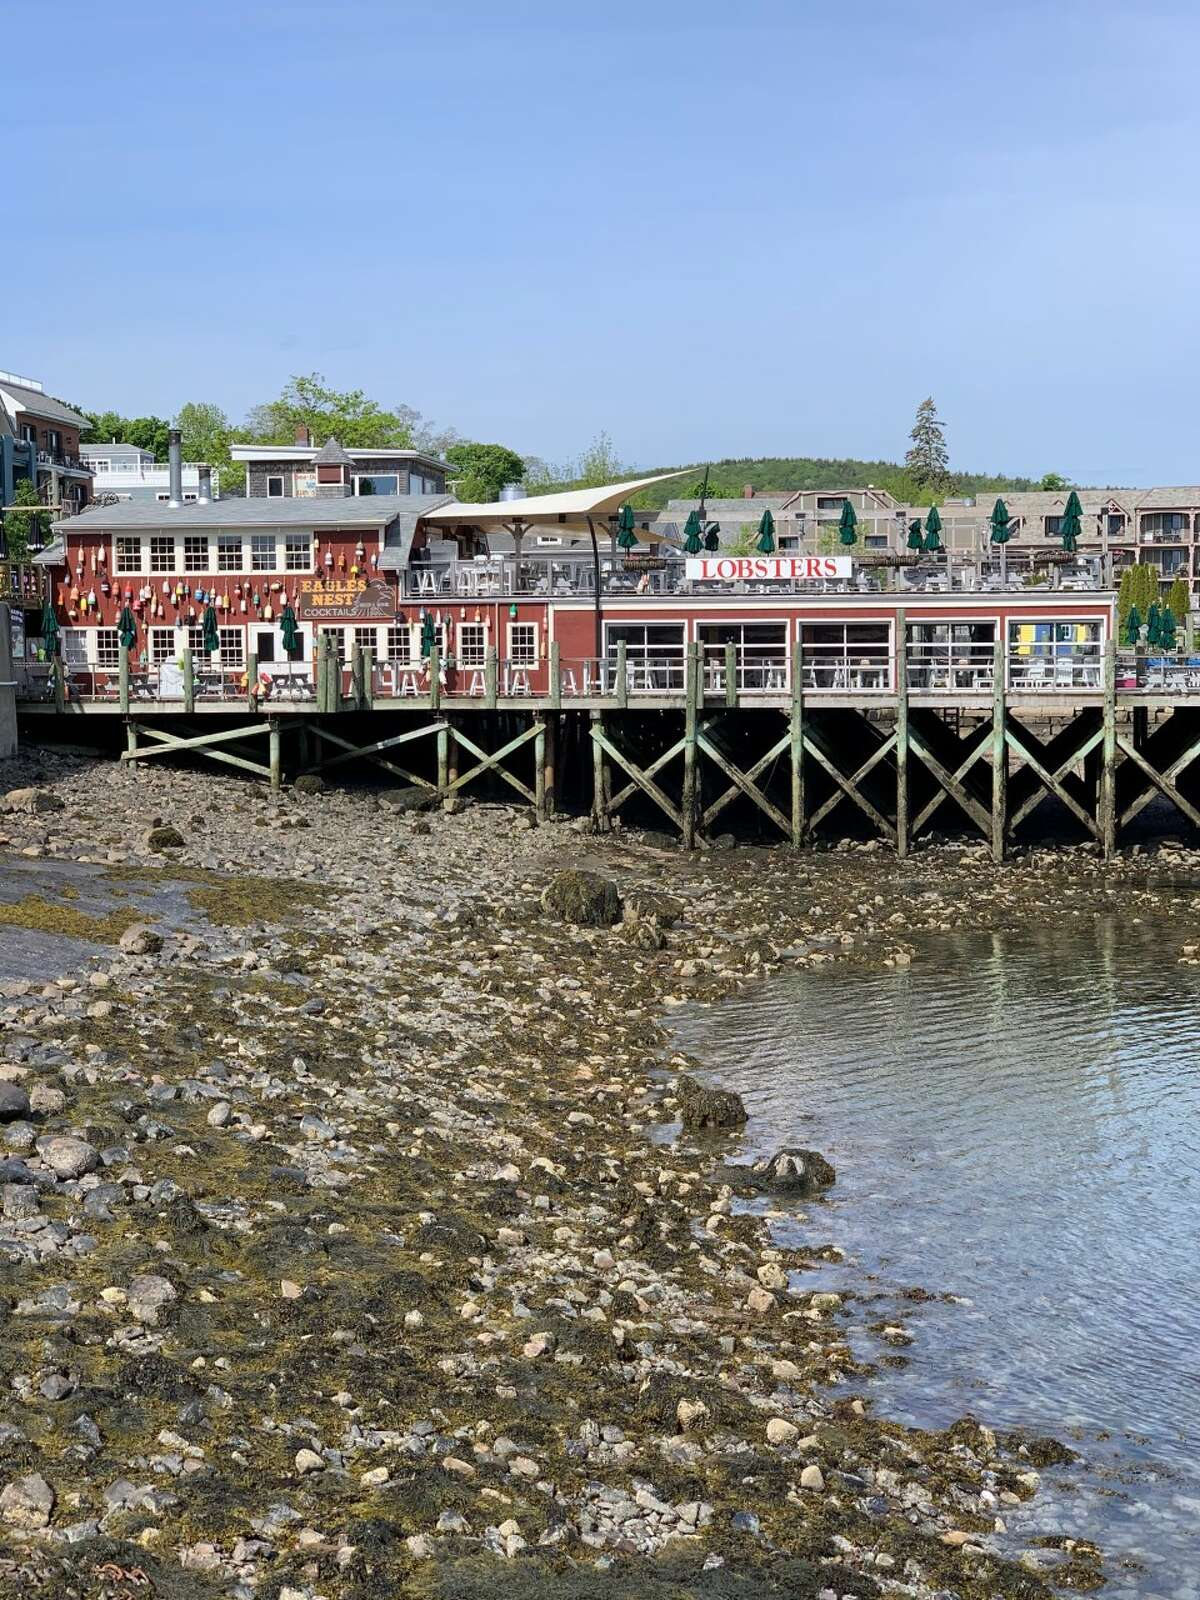 Bar Harbor, Maine, is a prime destination for viewing wildlife, exploring nature, relaxing by the beach and indulging in some of the best lobster you've ever had.